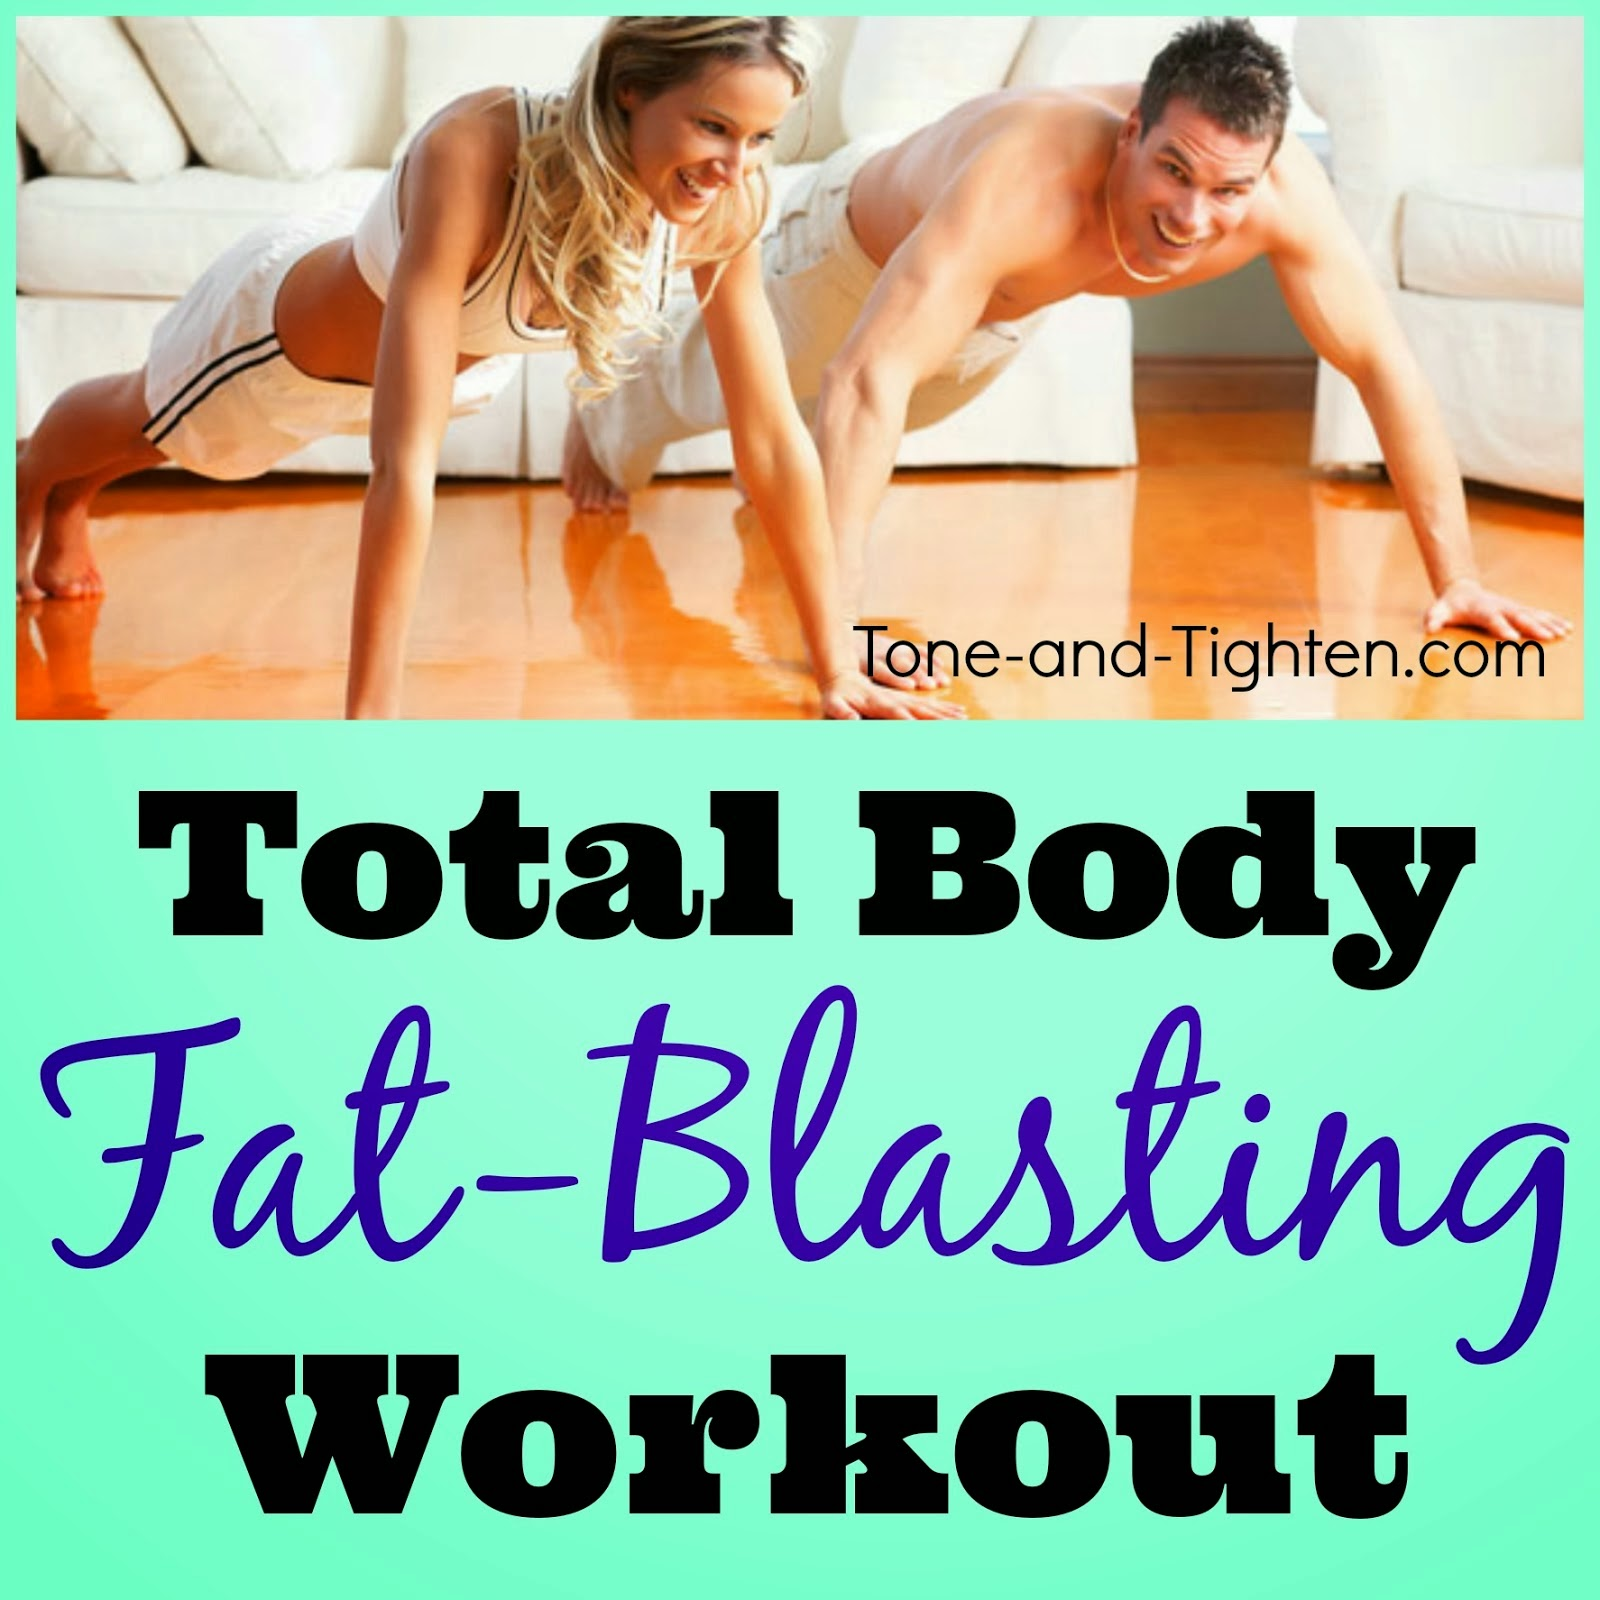 https://tone-and-tighten.com/2014/01/fat-blasting-workout-no-equipment-needed.html